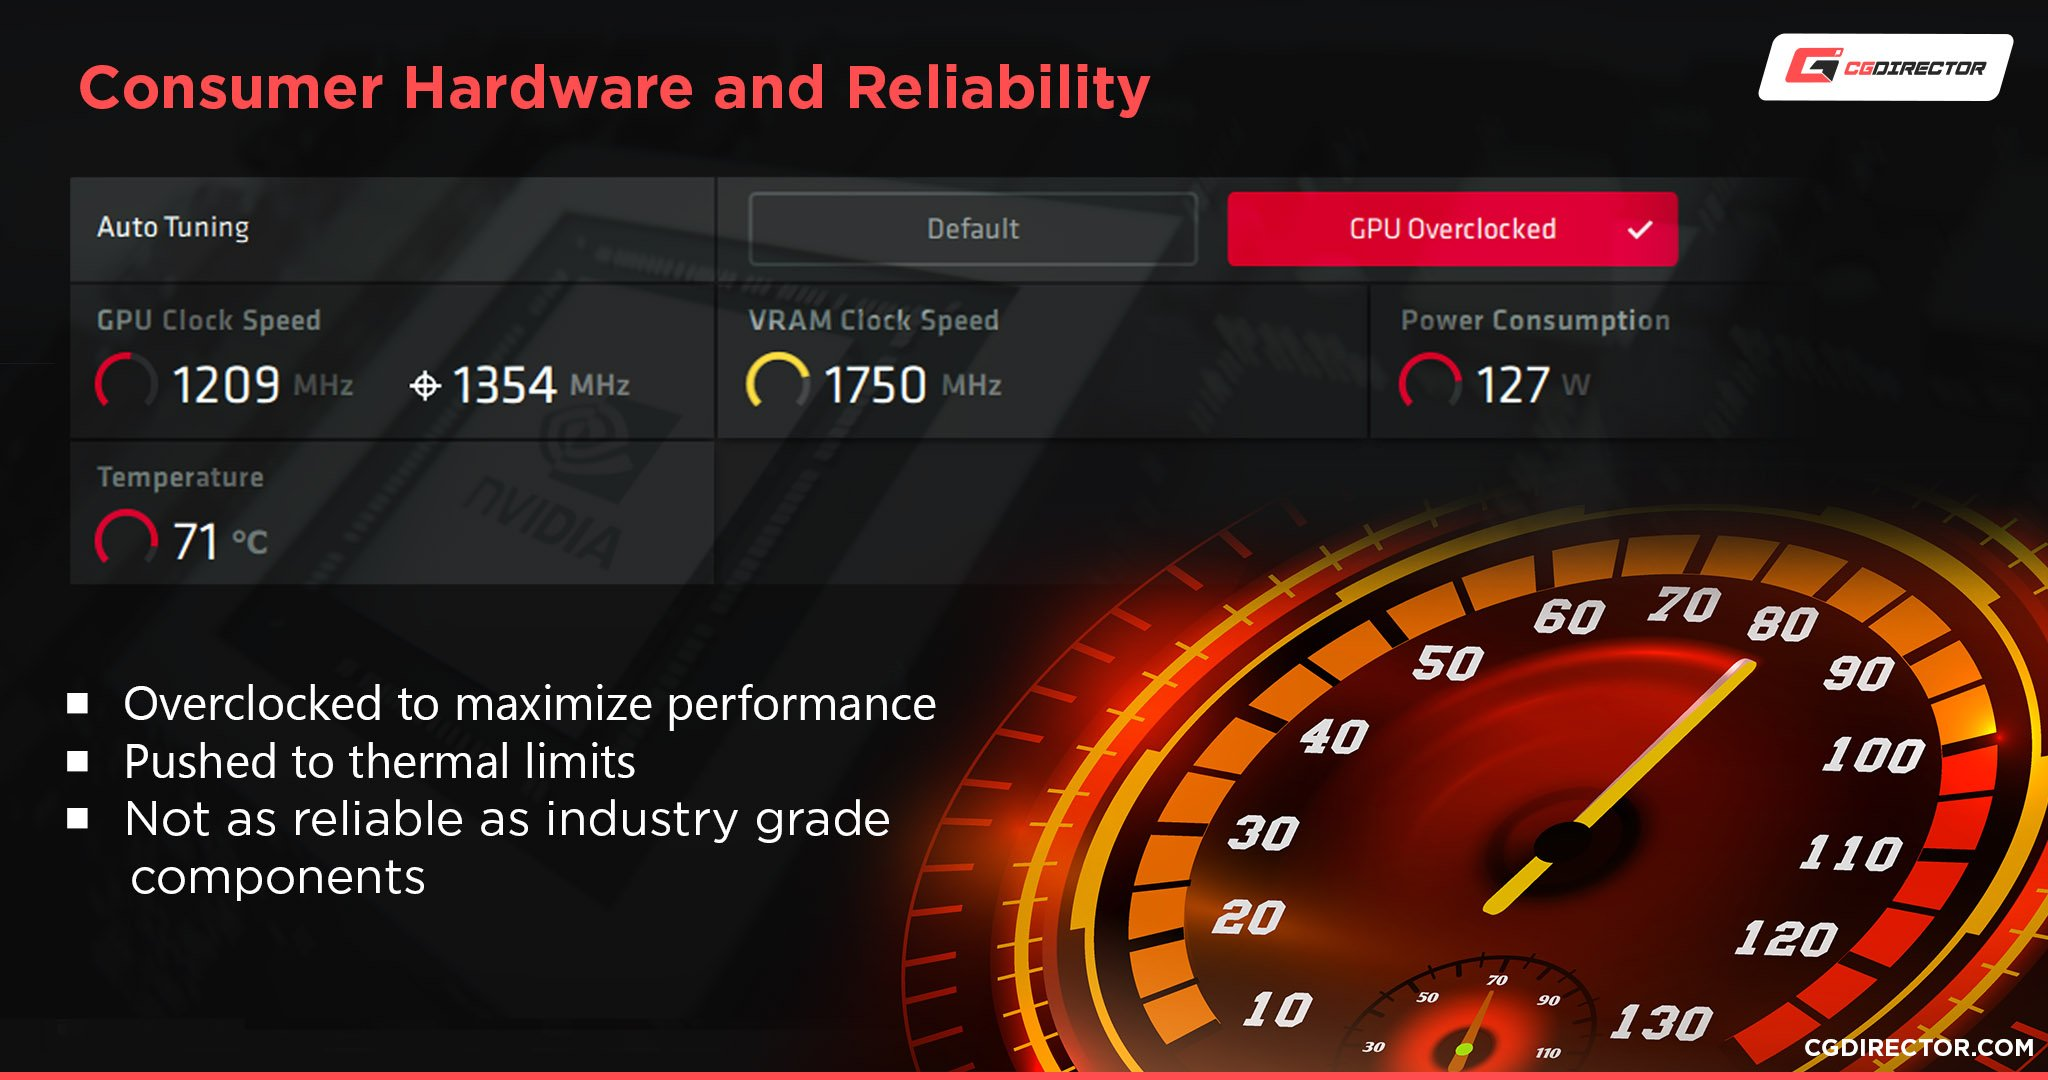 Consumer Hardware has drawbacks in terms of reliability